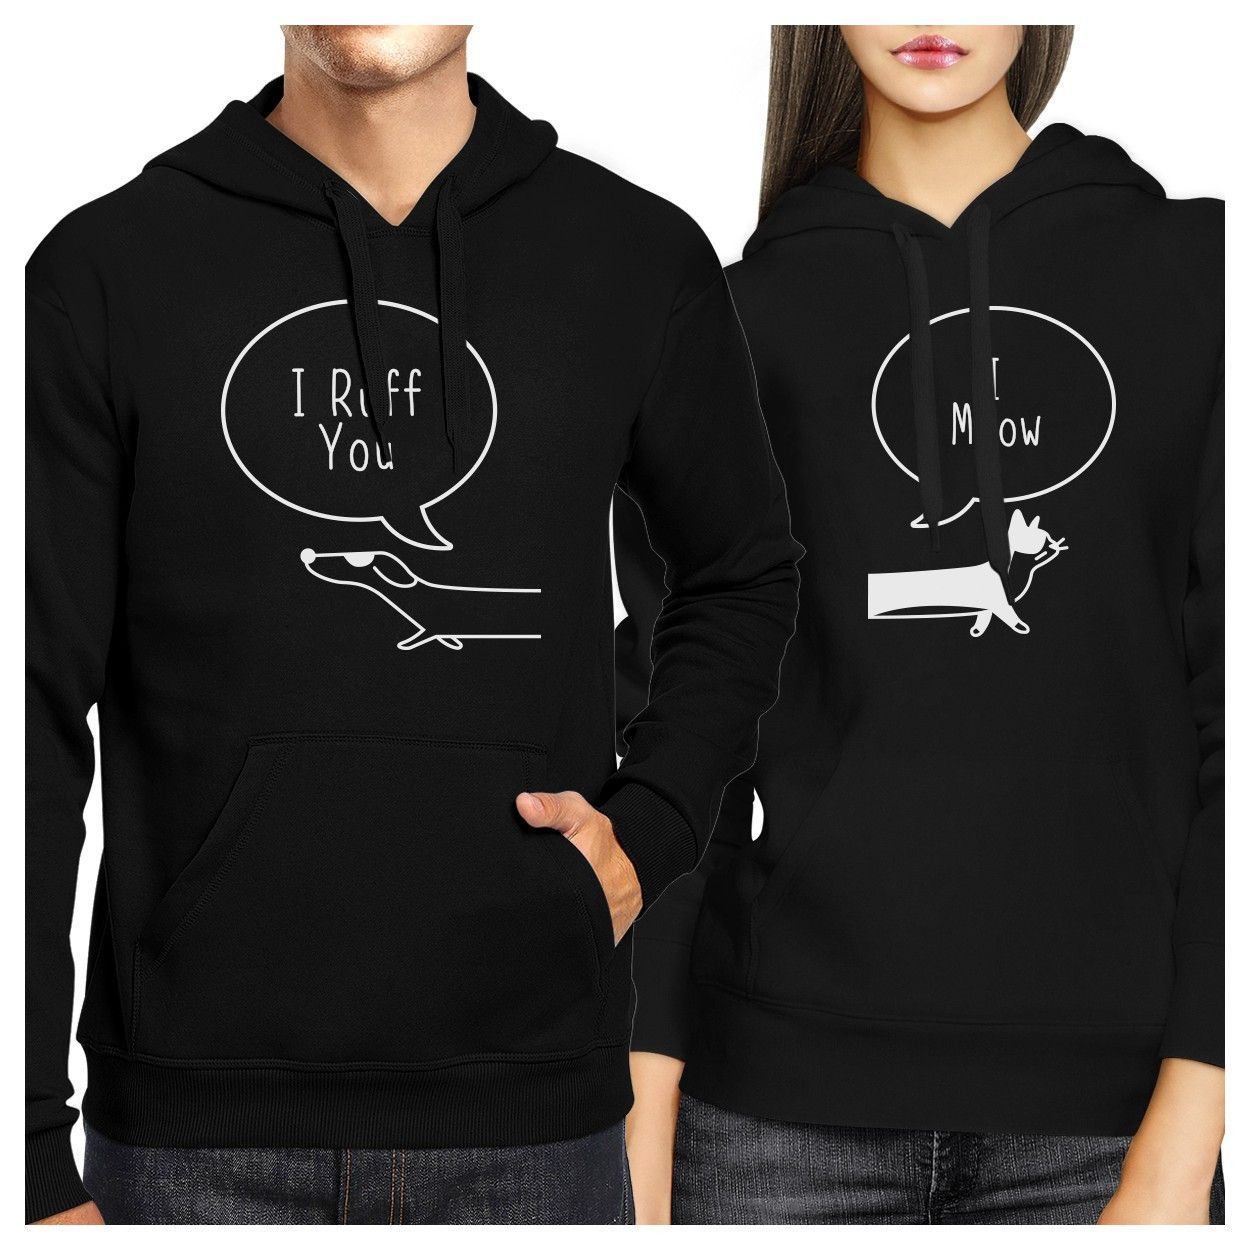 Wedding Gifts For Dog Lovers: I Ruff You And I Meow Couple Hoodies Christmas Gift For